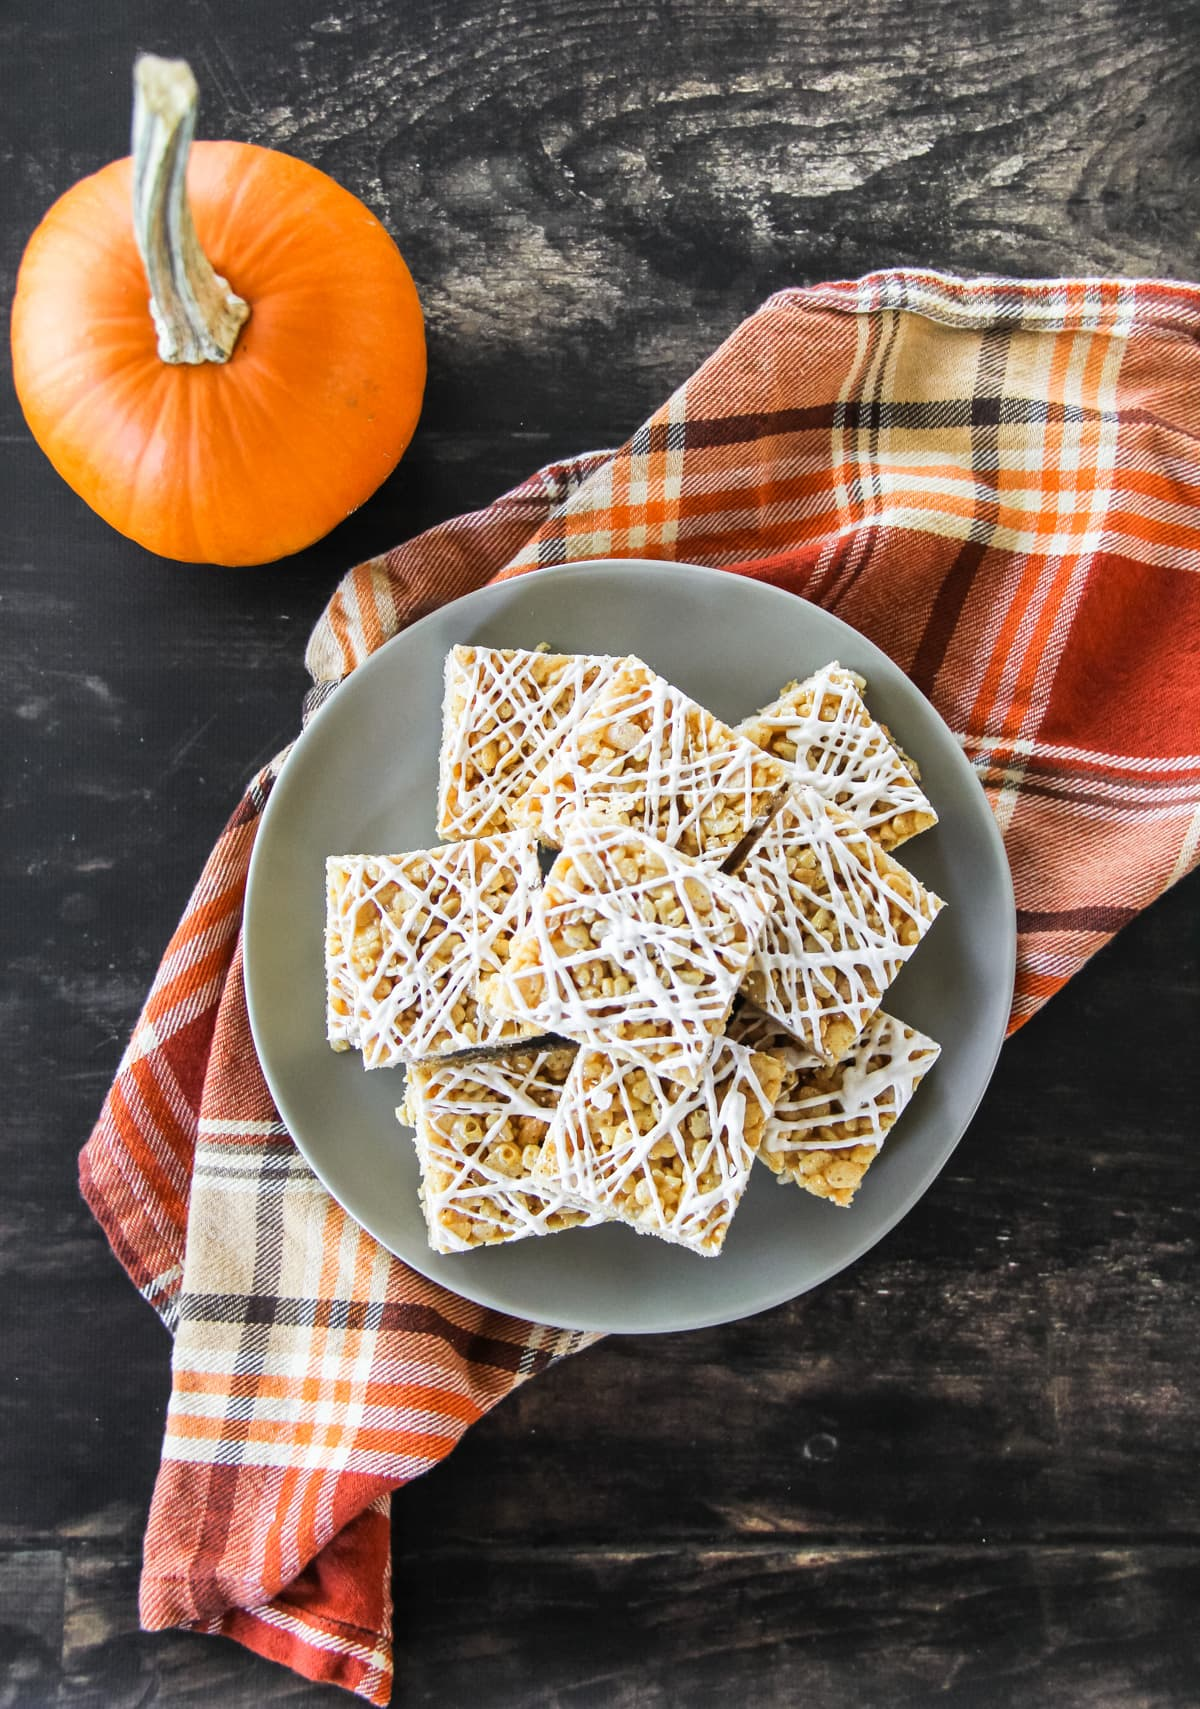 a top down view of squares of Pumpkin Spice Rice Krispie Treats sitting on a grey plate. the plate sits on an orange plaid napkin on a brown wooden board. off to the side is a small orange pumpkin